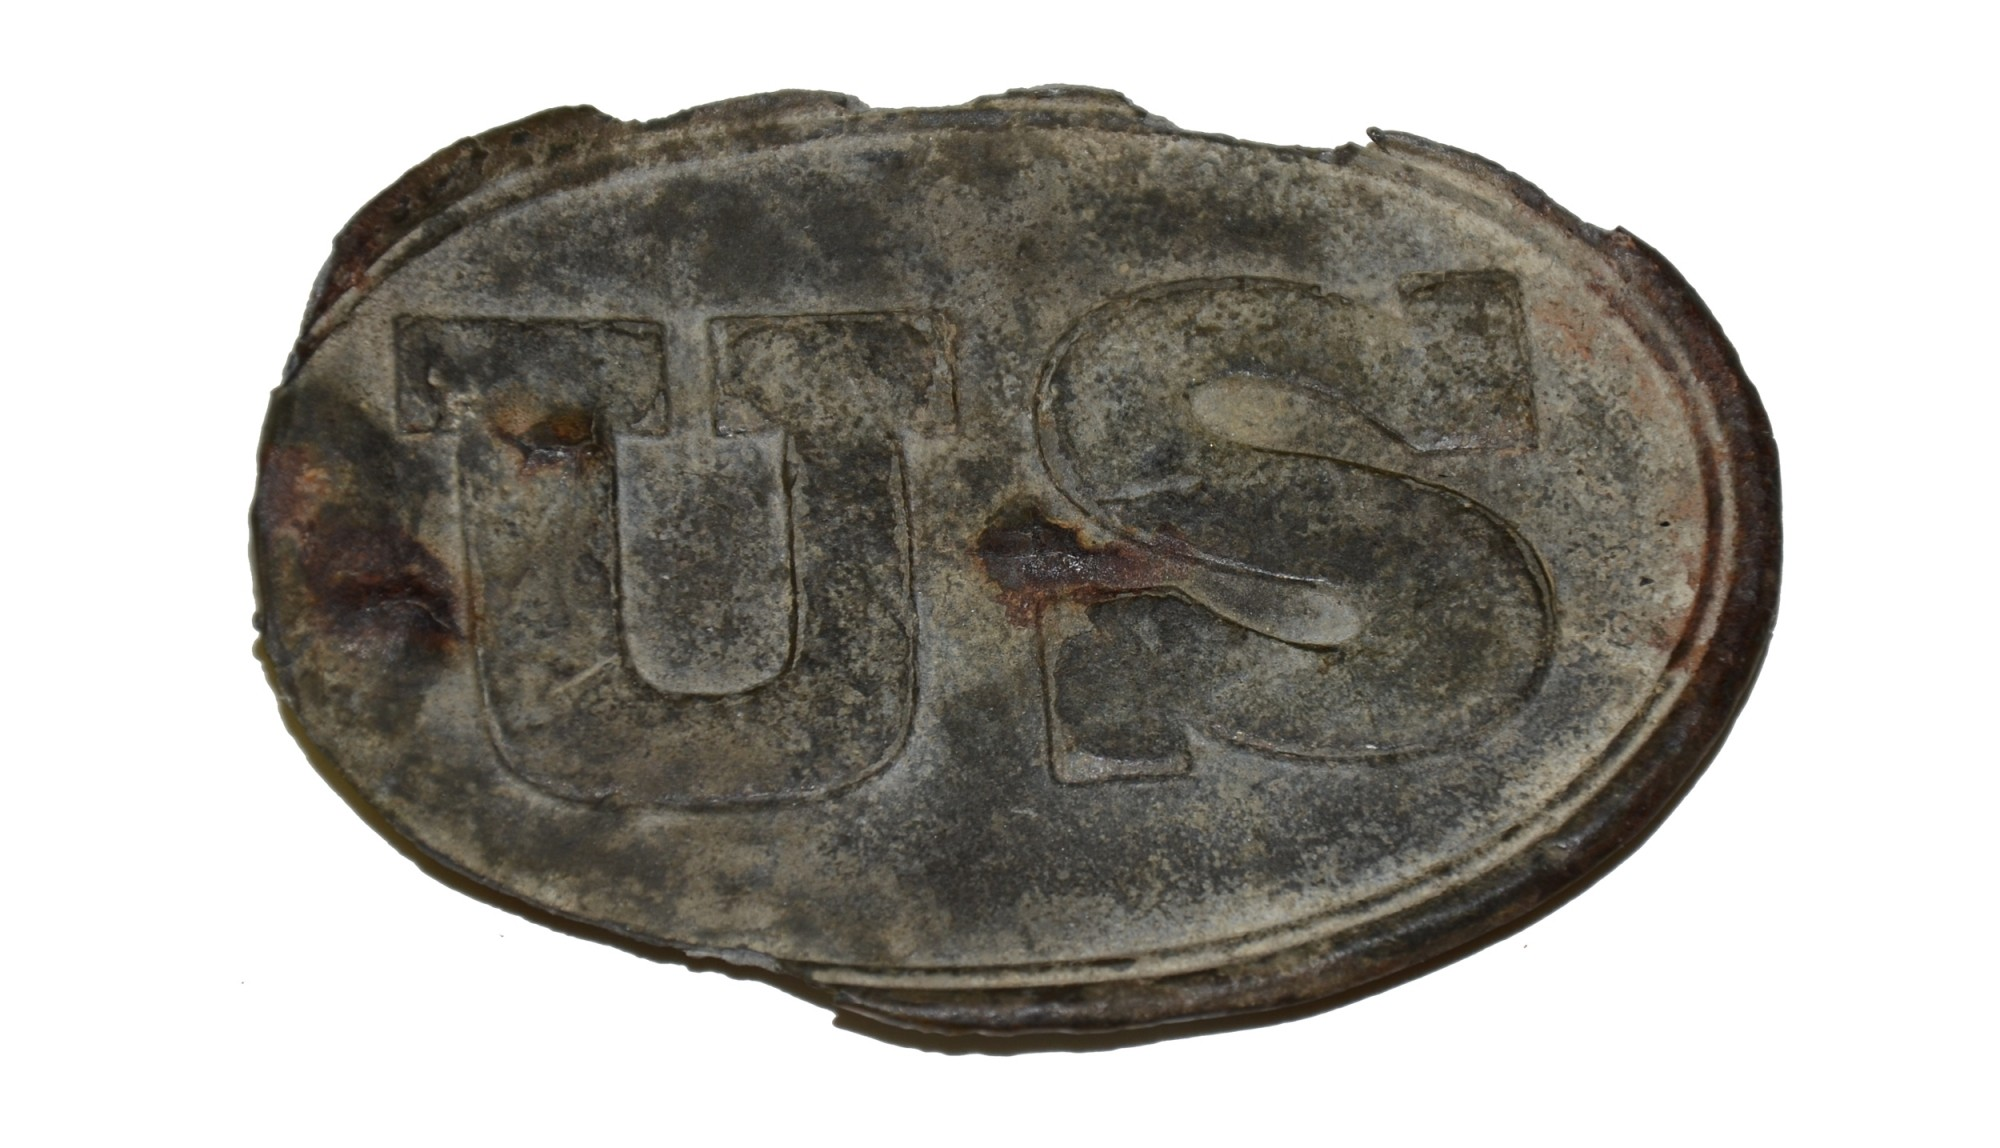 US PATTERN 1839 CARTRIDGE BOX PLATE FROM GETTYSBURG